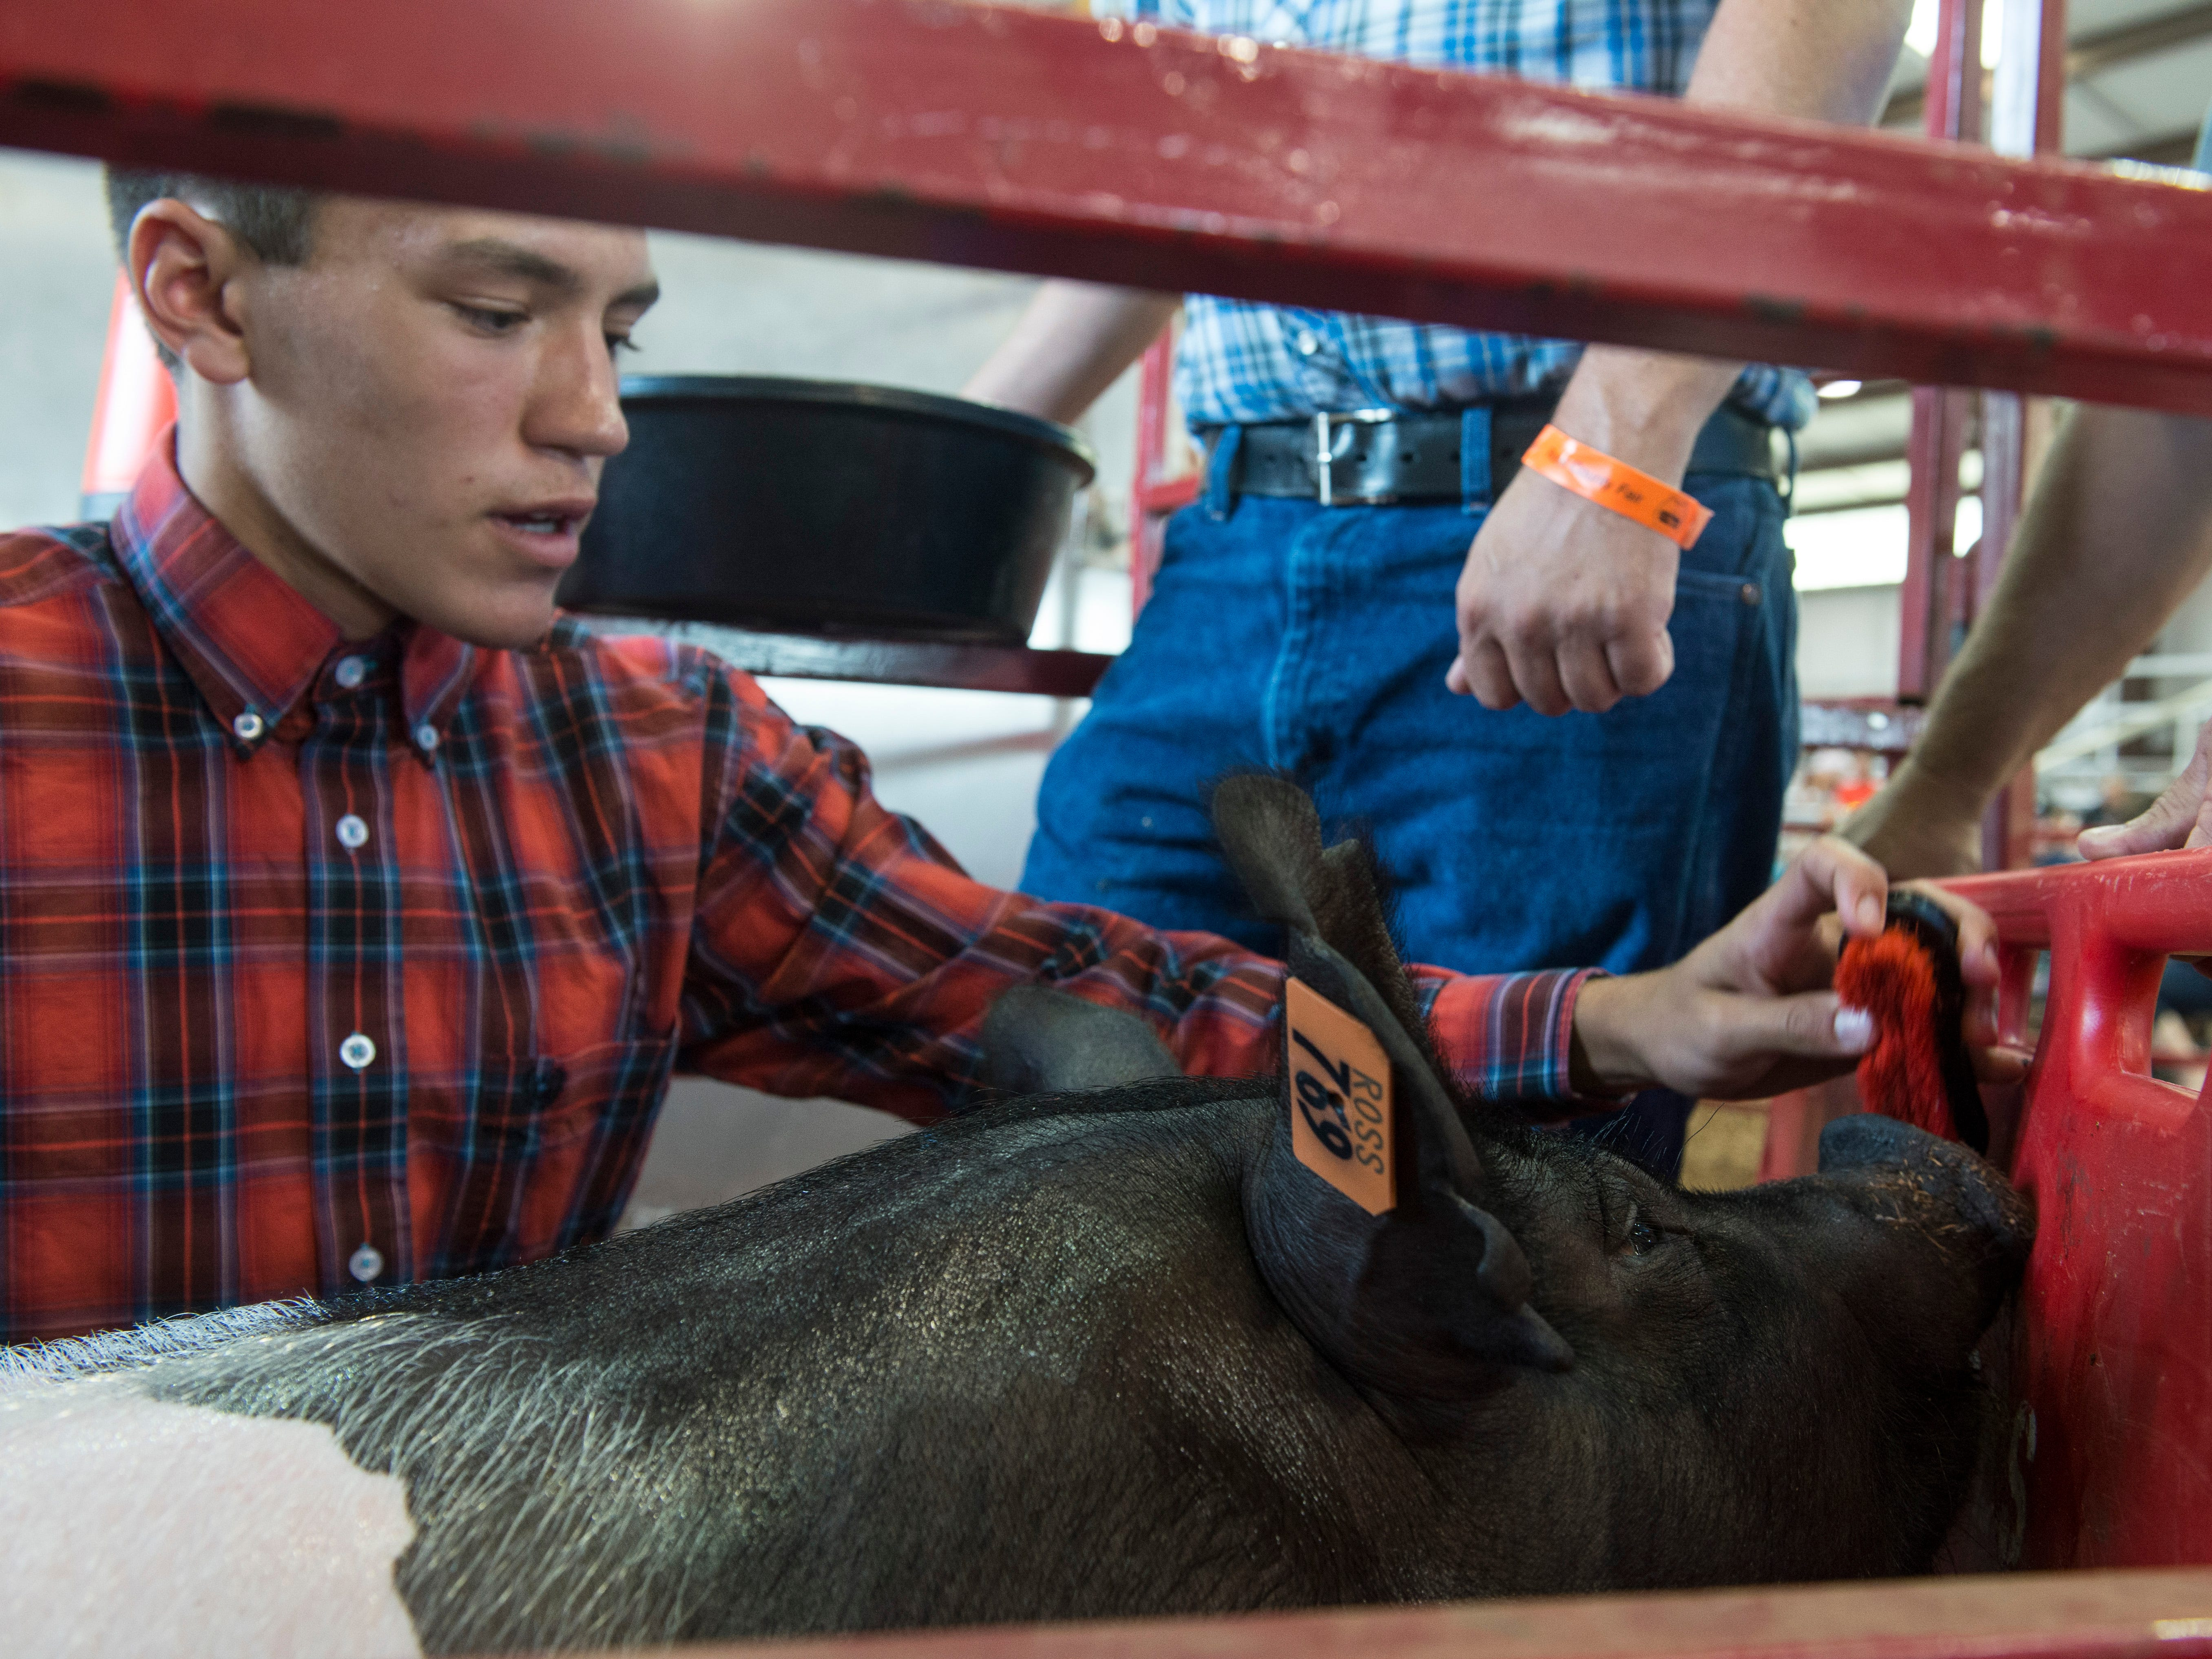 Garrett Simmons prepares his 261-pound hog for auction during the Junior Fair Swine Sale at the Ross County Fair on August 9, 2018 in Chillicothe, Ohio. The hog was selected as the 2018 Grand Champion Market Hog.